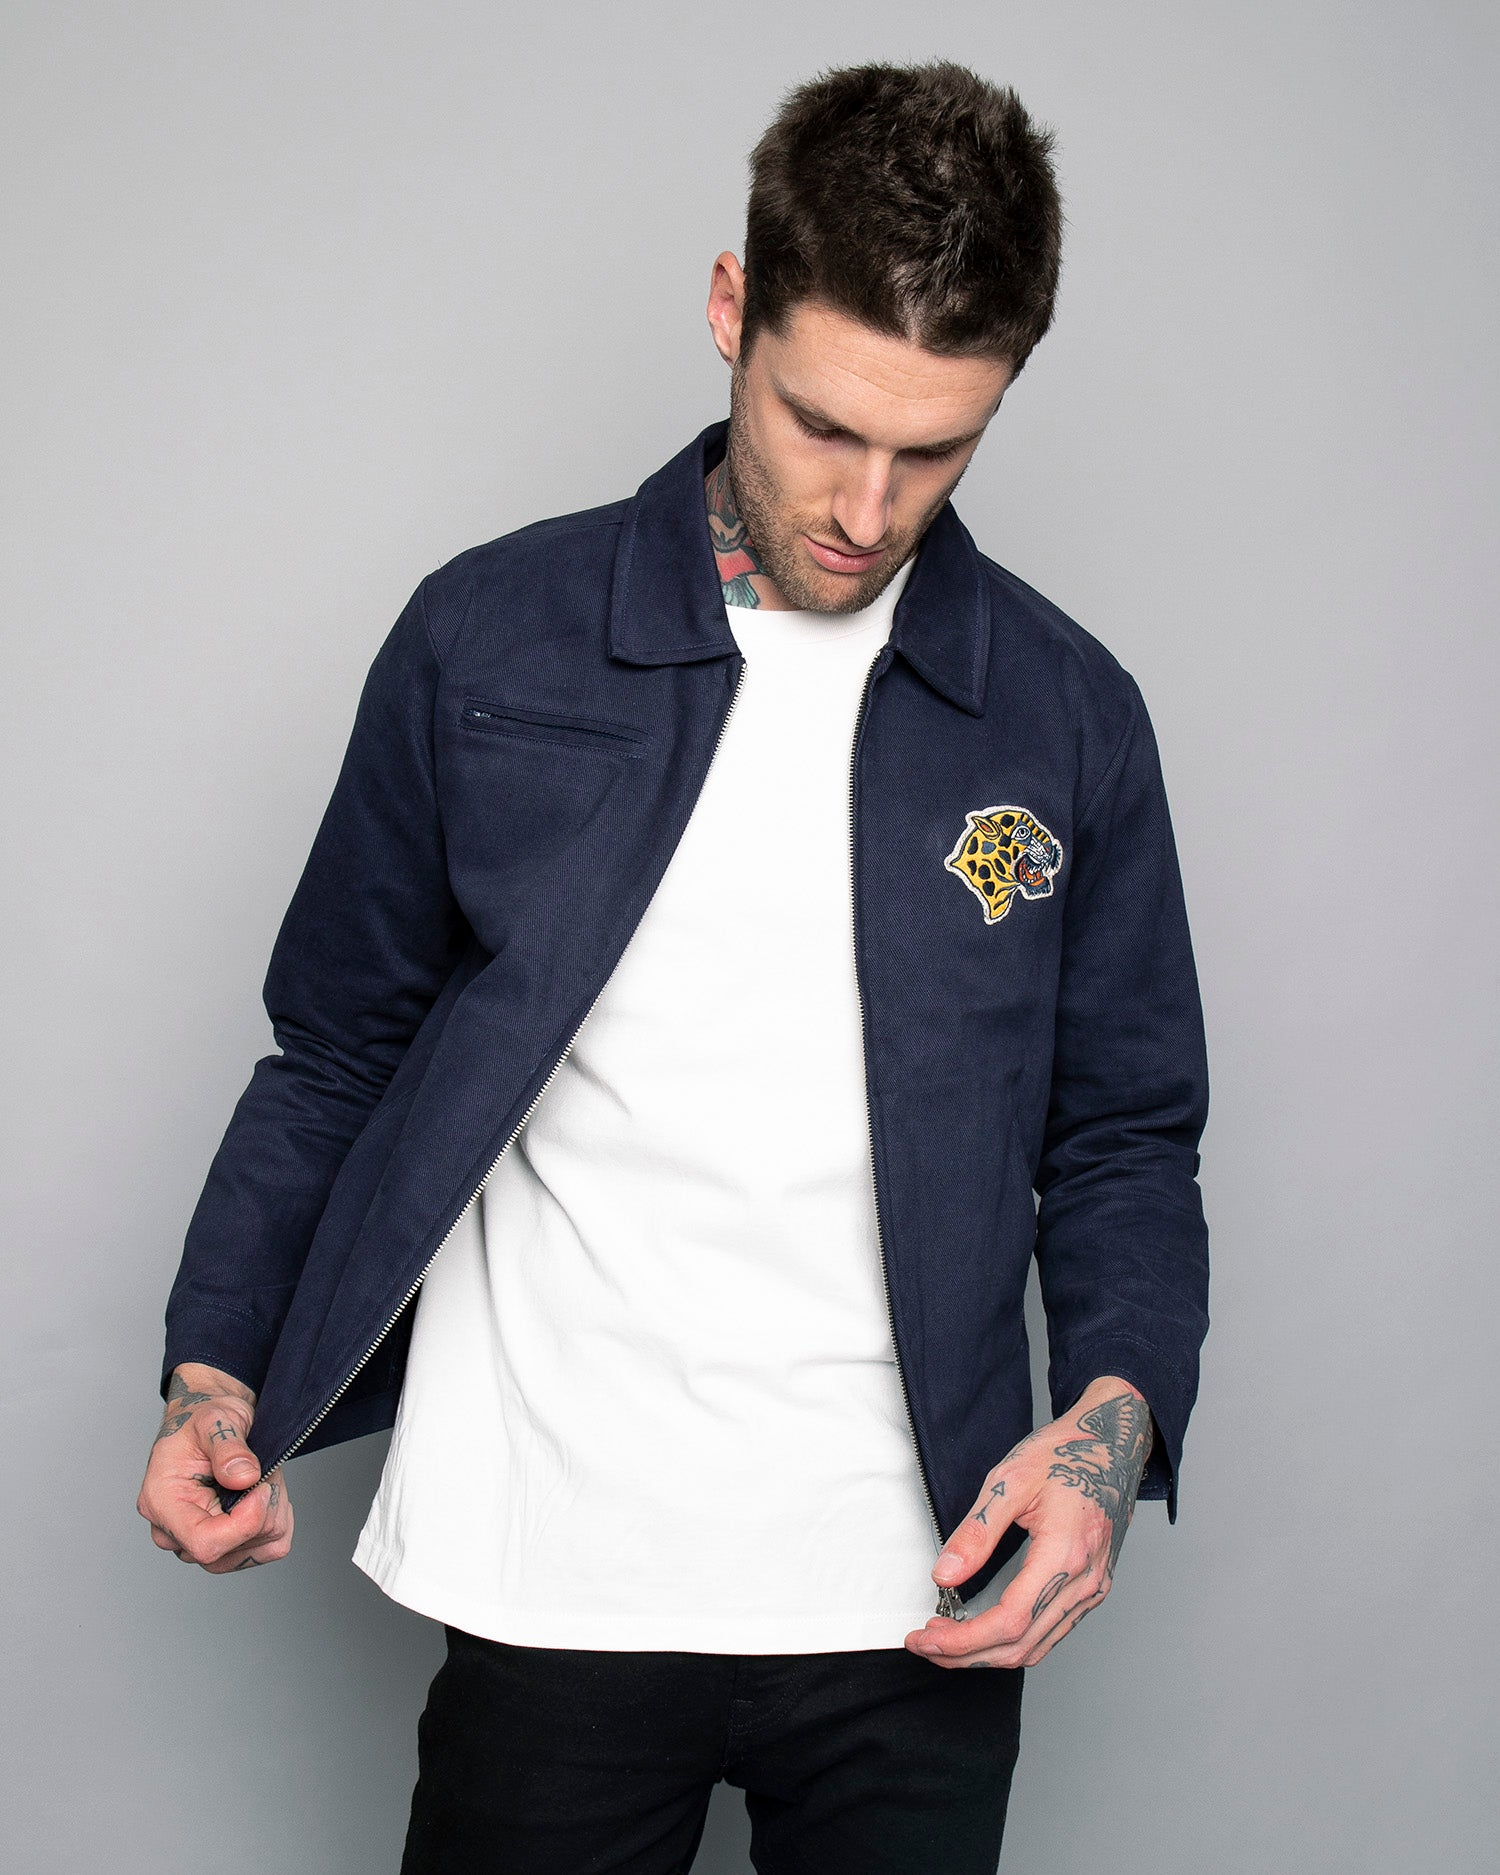 Cheetah Mechanic Jacket